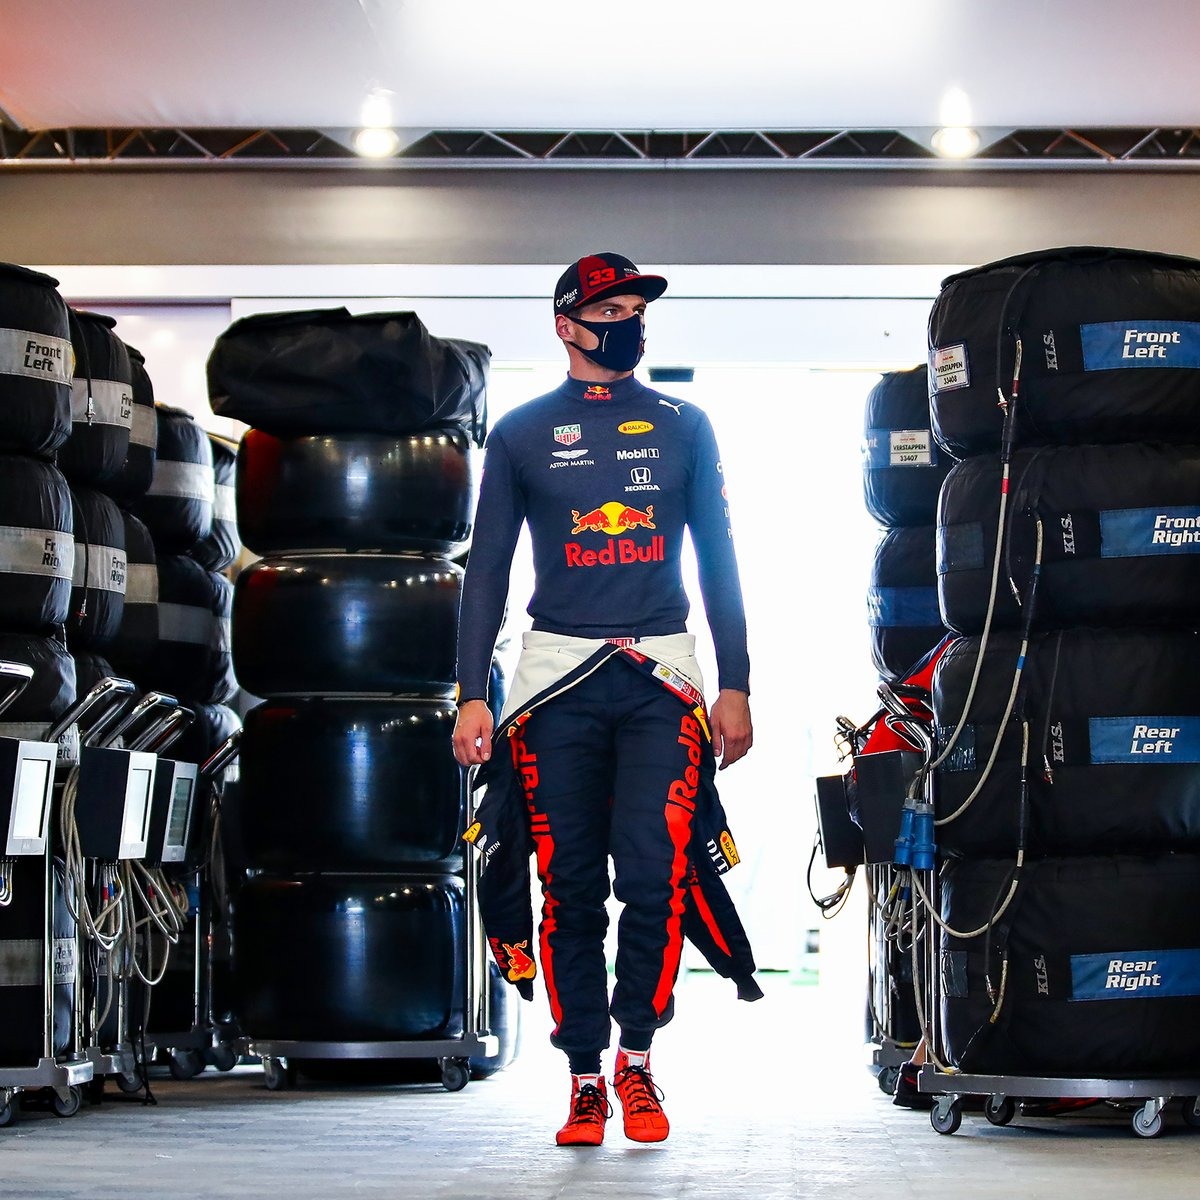 Let's see where these tyres will bring me this weekend 🦁 #UnleashTheLion #KeepPushing 🇪🇸 #SpanishGP https://t.co/YS7qOIkEHq